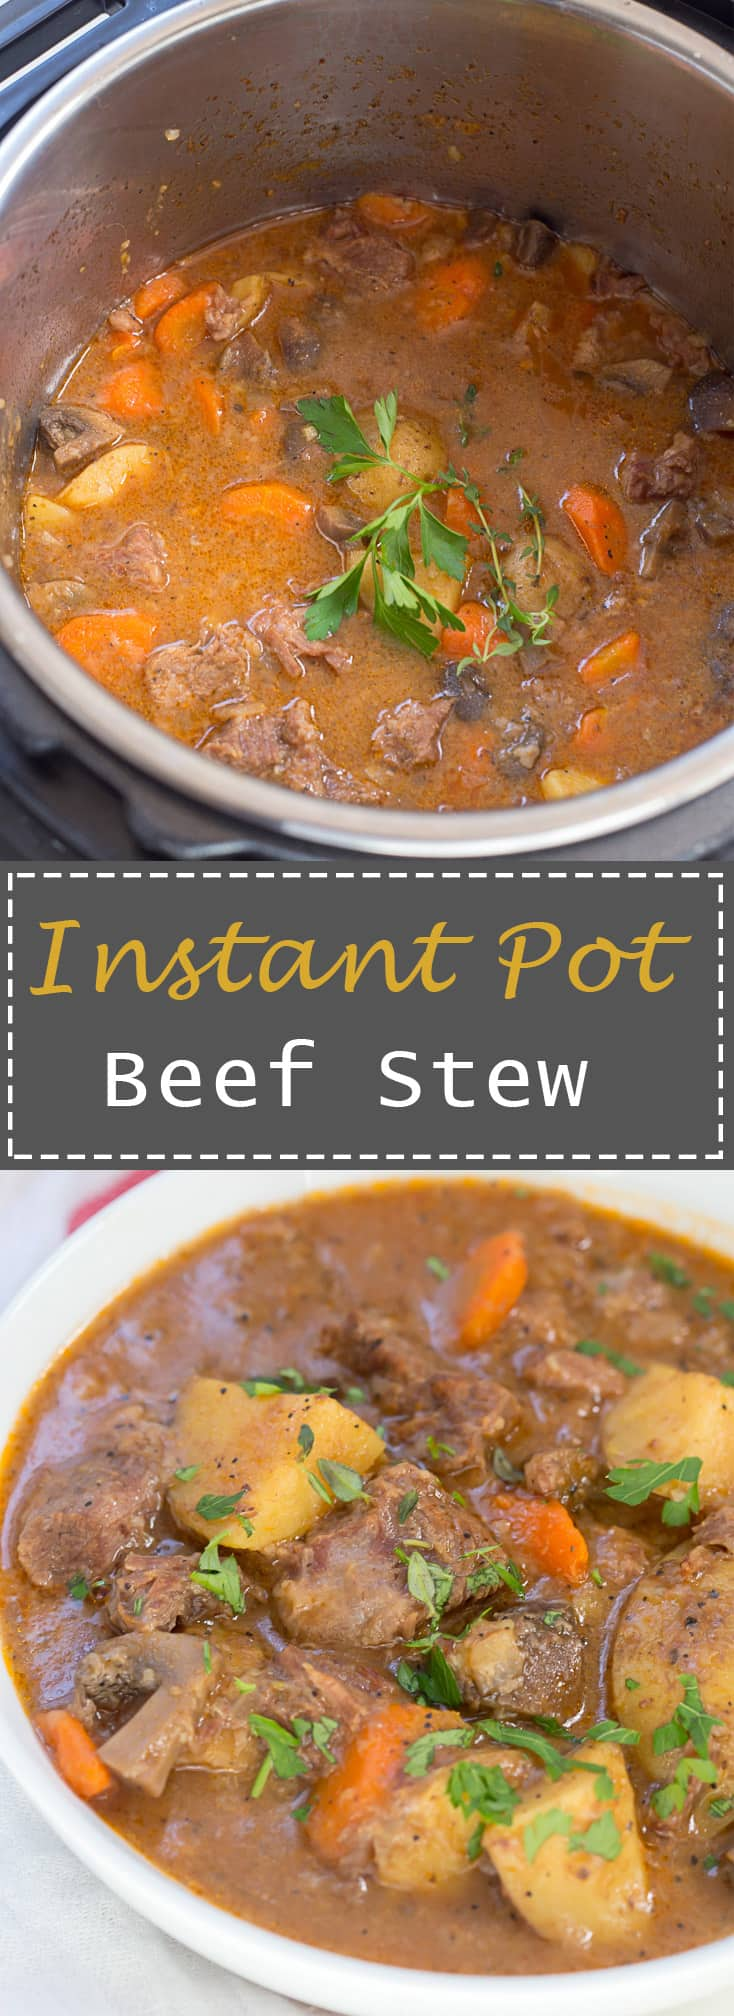 No need to have a big pot of beef stew simmering all day when it can be ready in BLANK time in your Instant Pot!  The beef is so tender it just falls apart and melts in your mouth - my favorite.